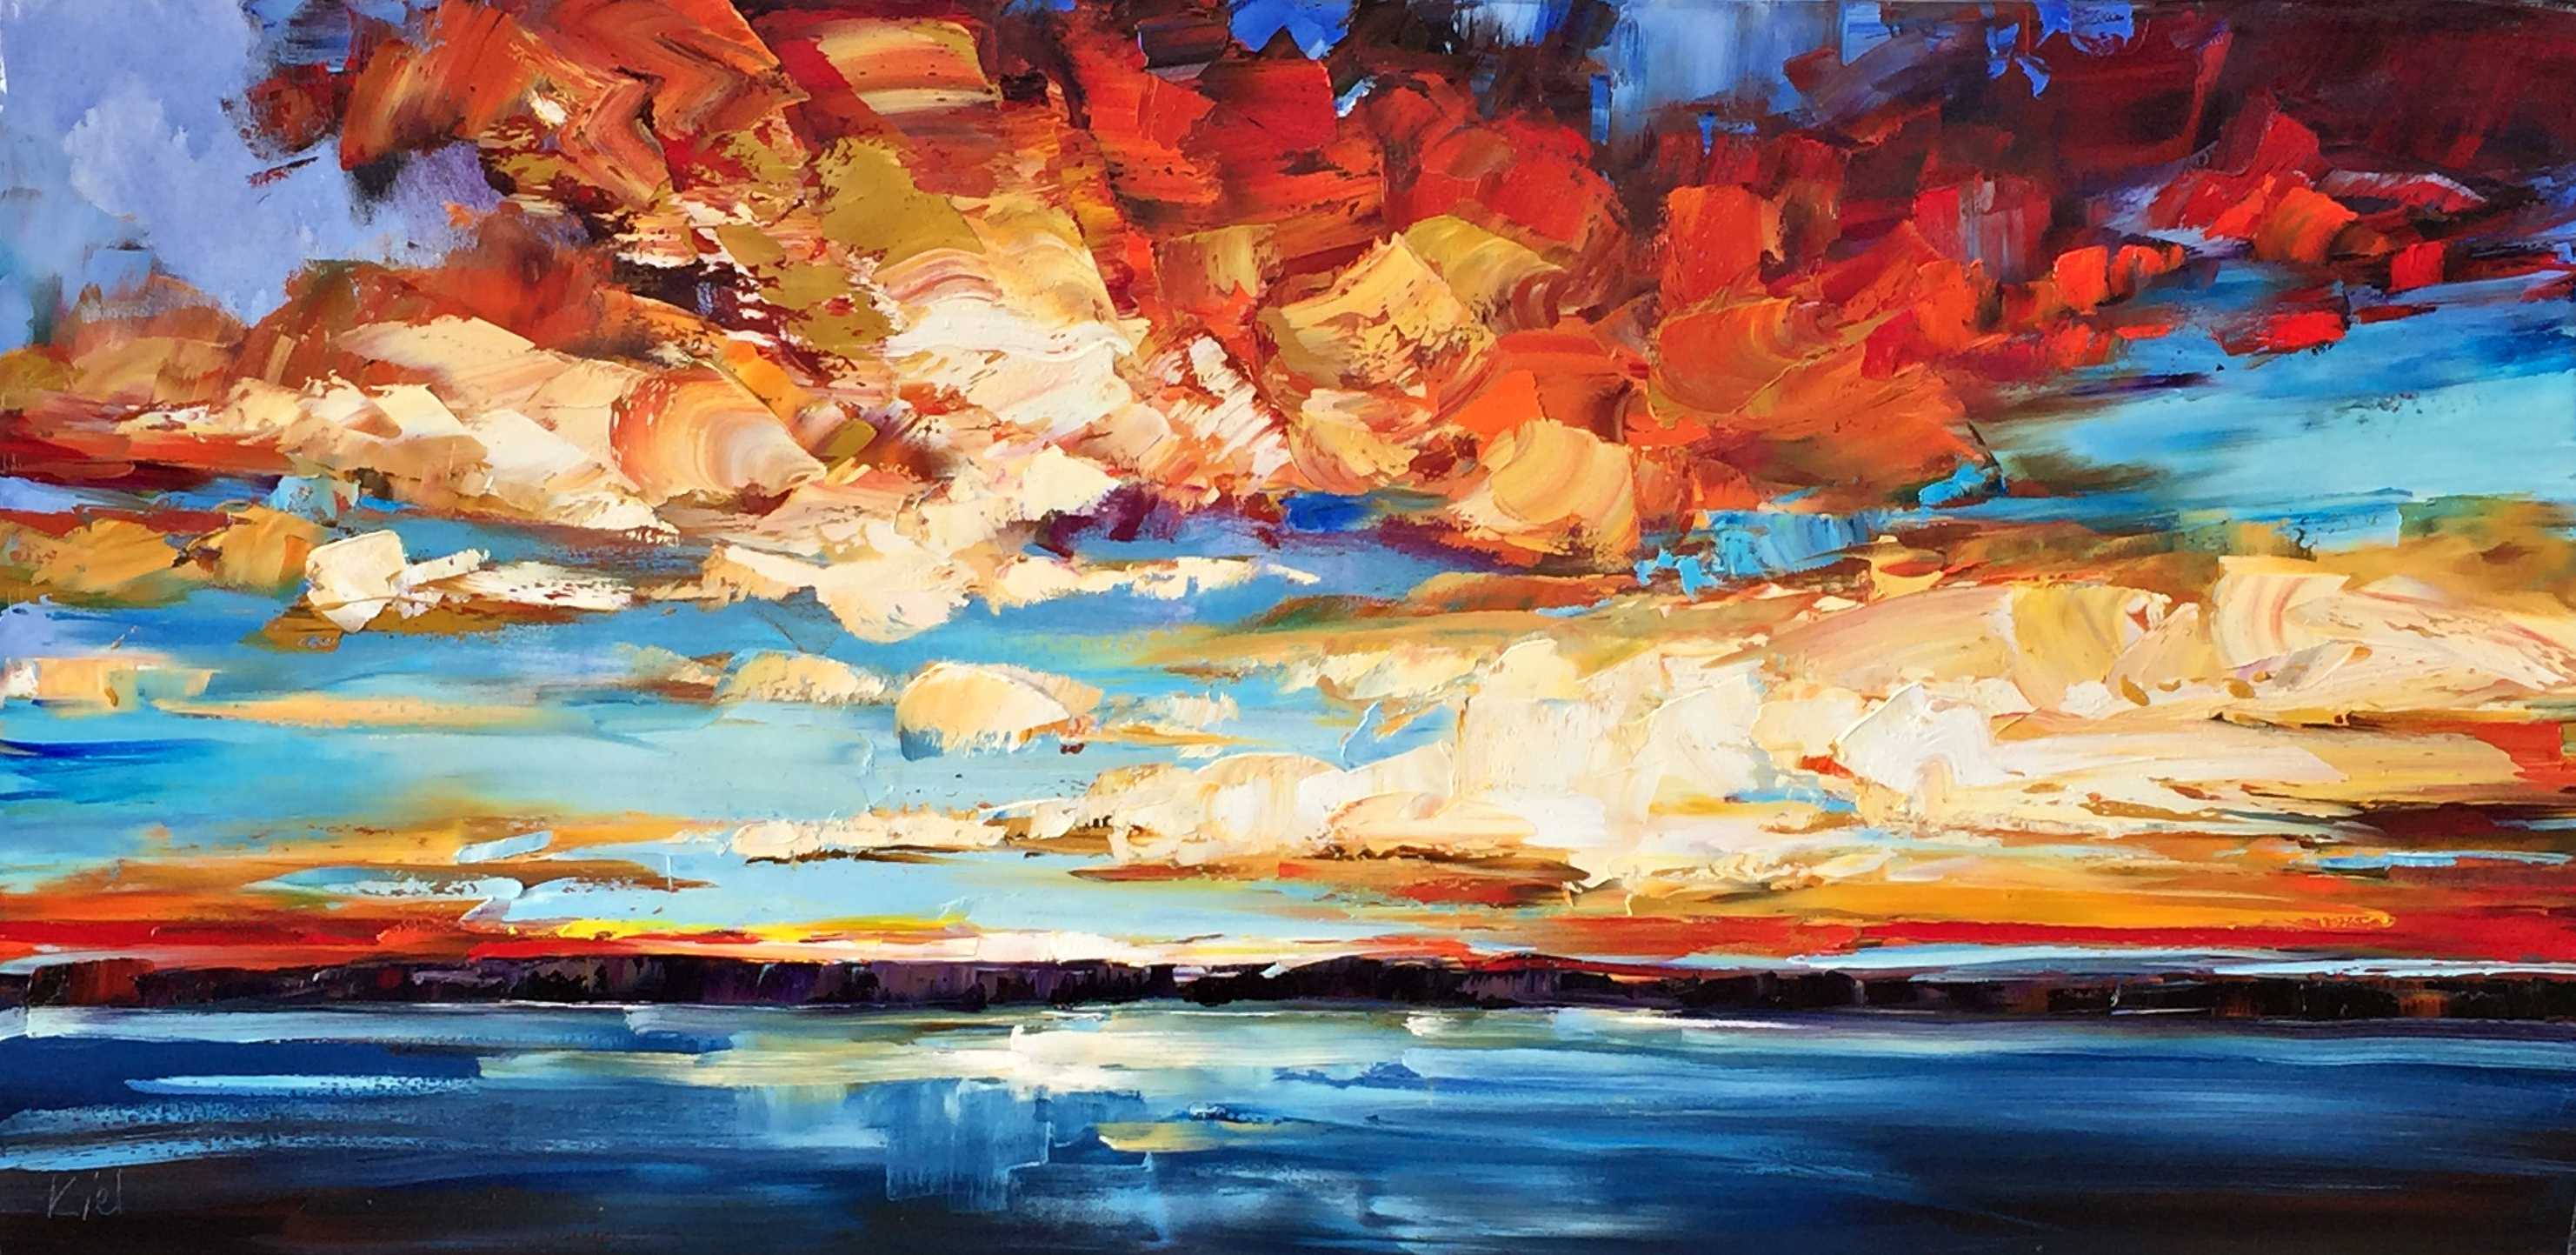 Rise + Shine, sunrise oil painting by Kimberly Kiel | Effusion Art Gallery + Cast Glass Studio, Invermere BC